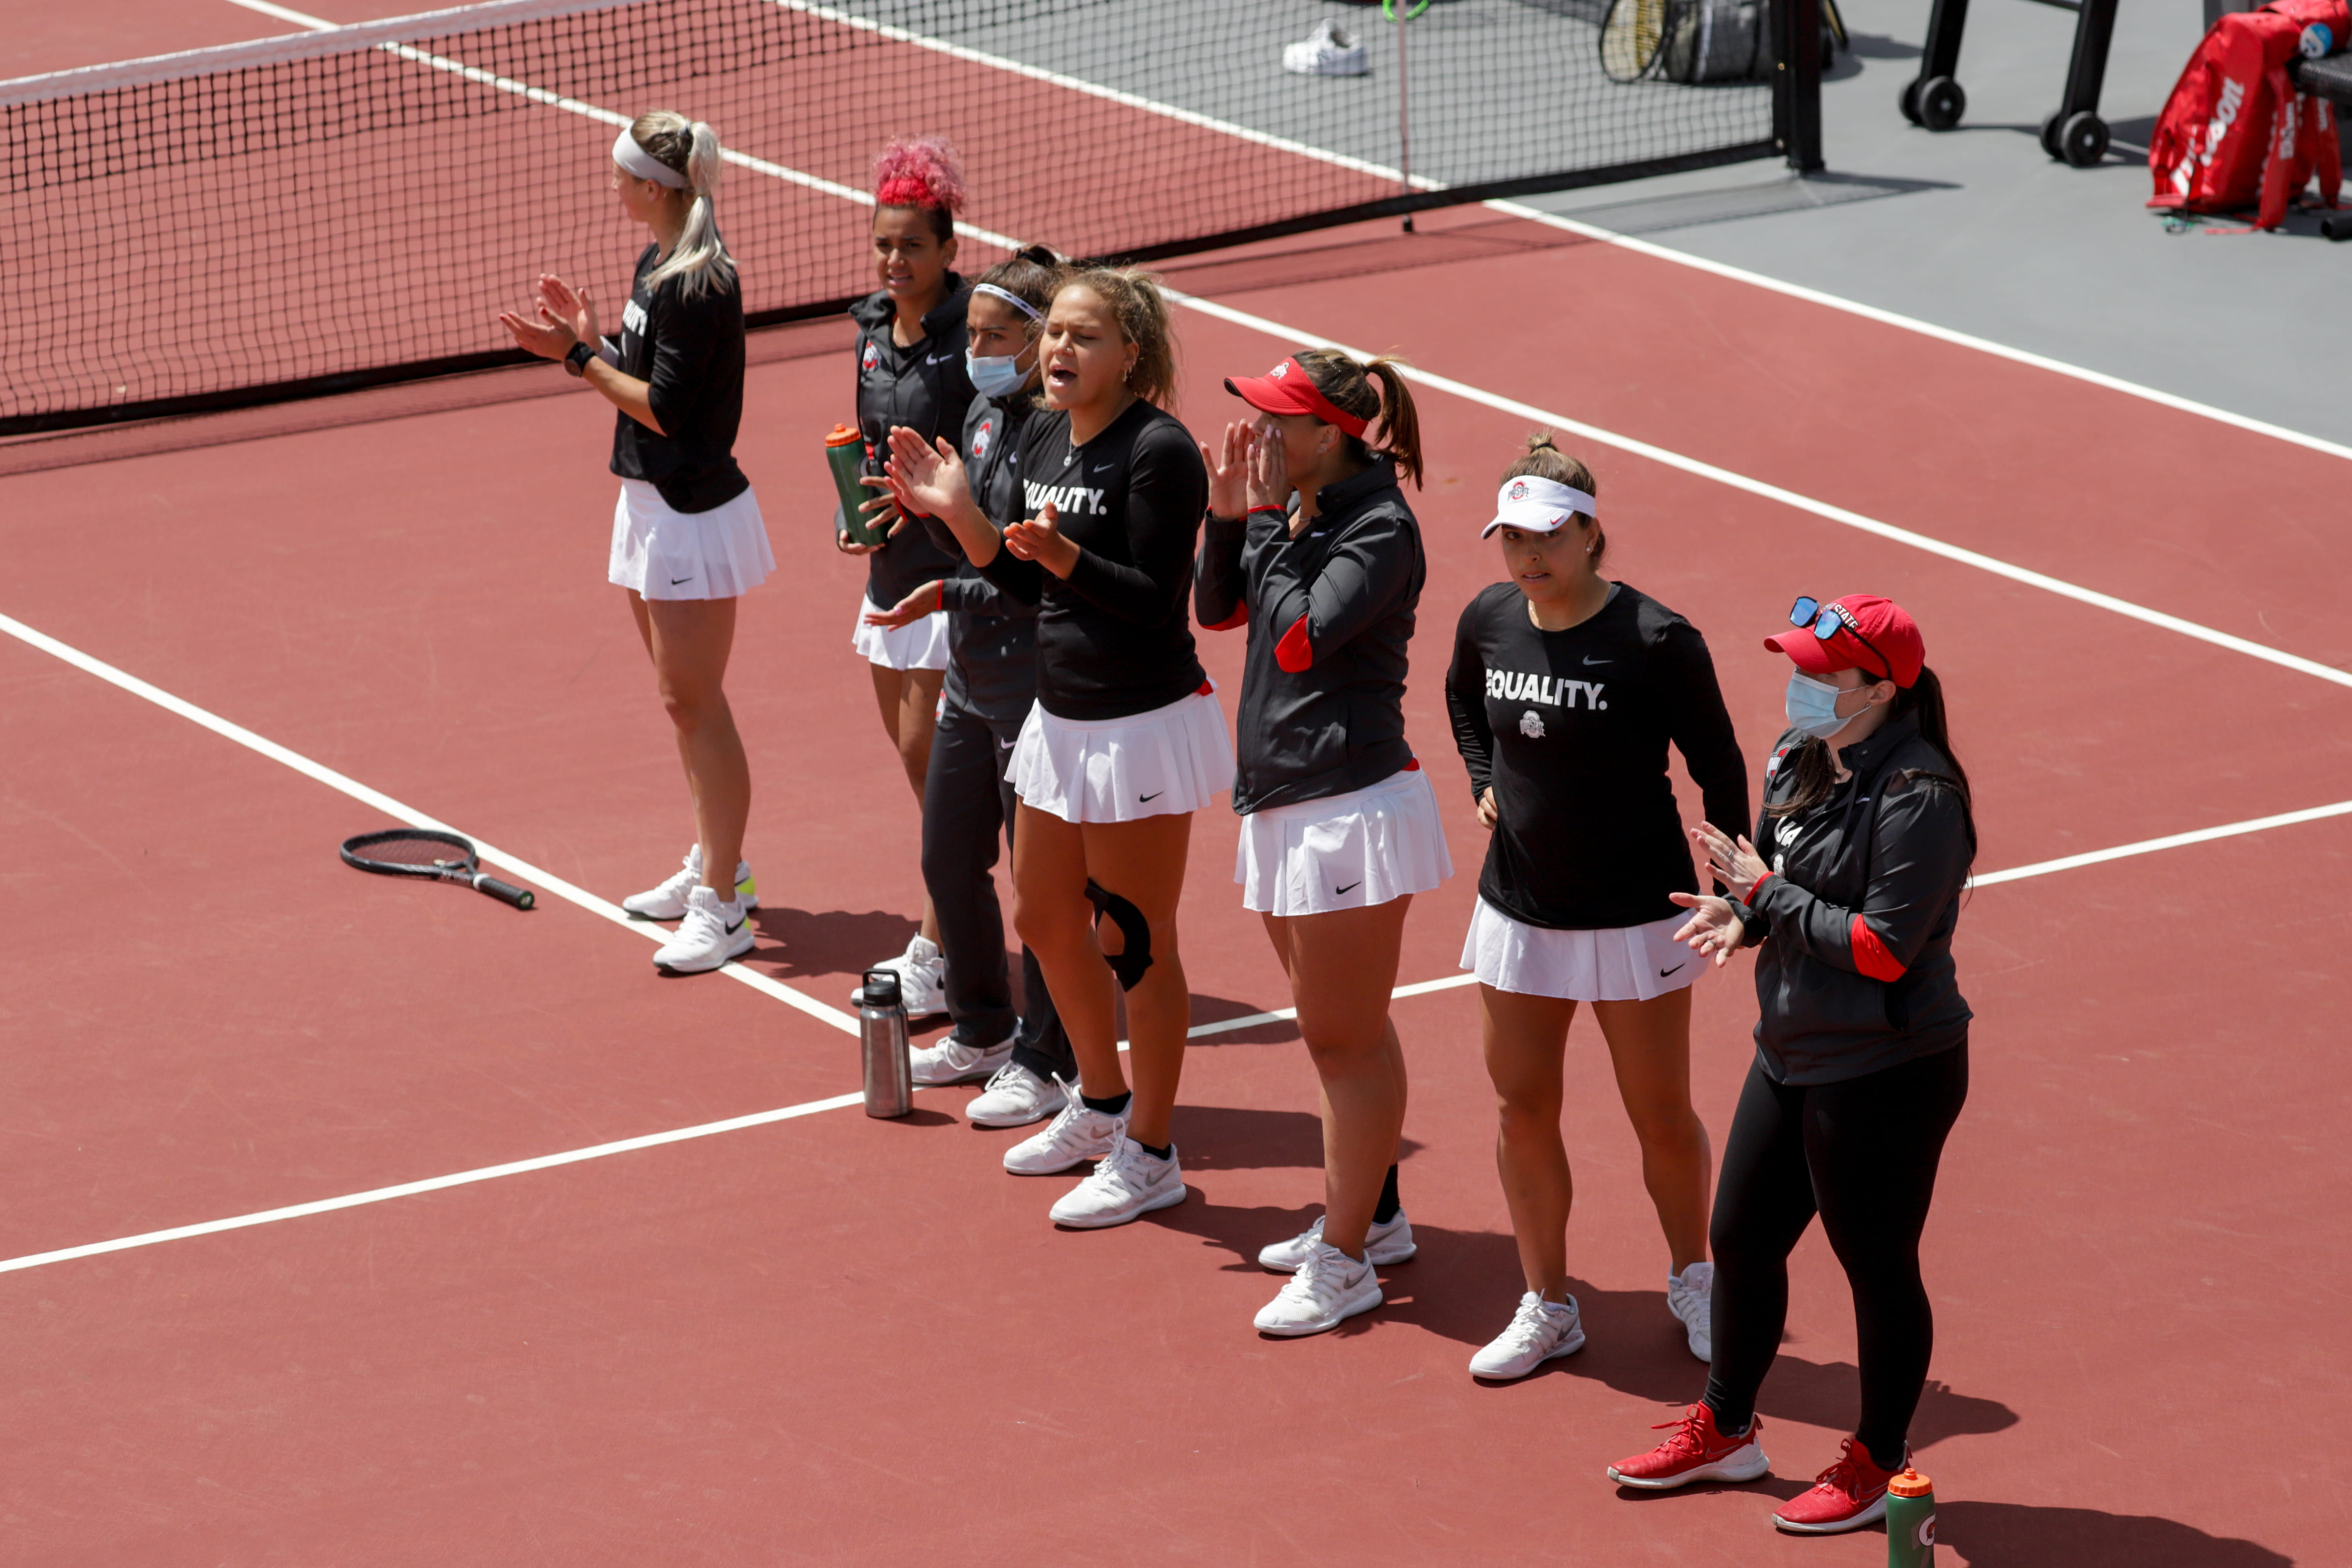 Women's Tennis: No. 15 Buckeyes square off against No. 2 Texas in Third Round of NCAA Tournament